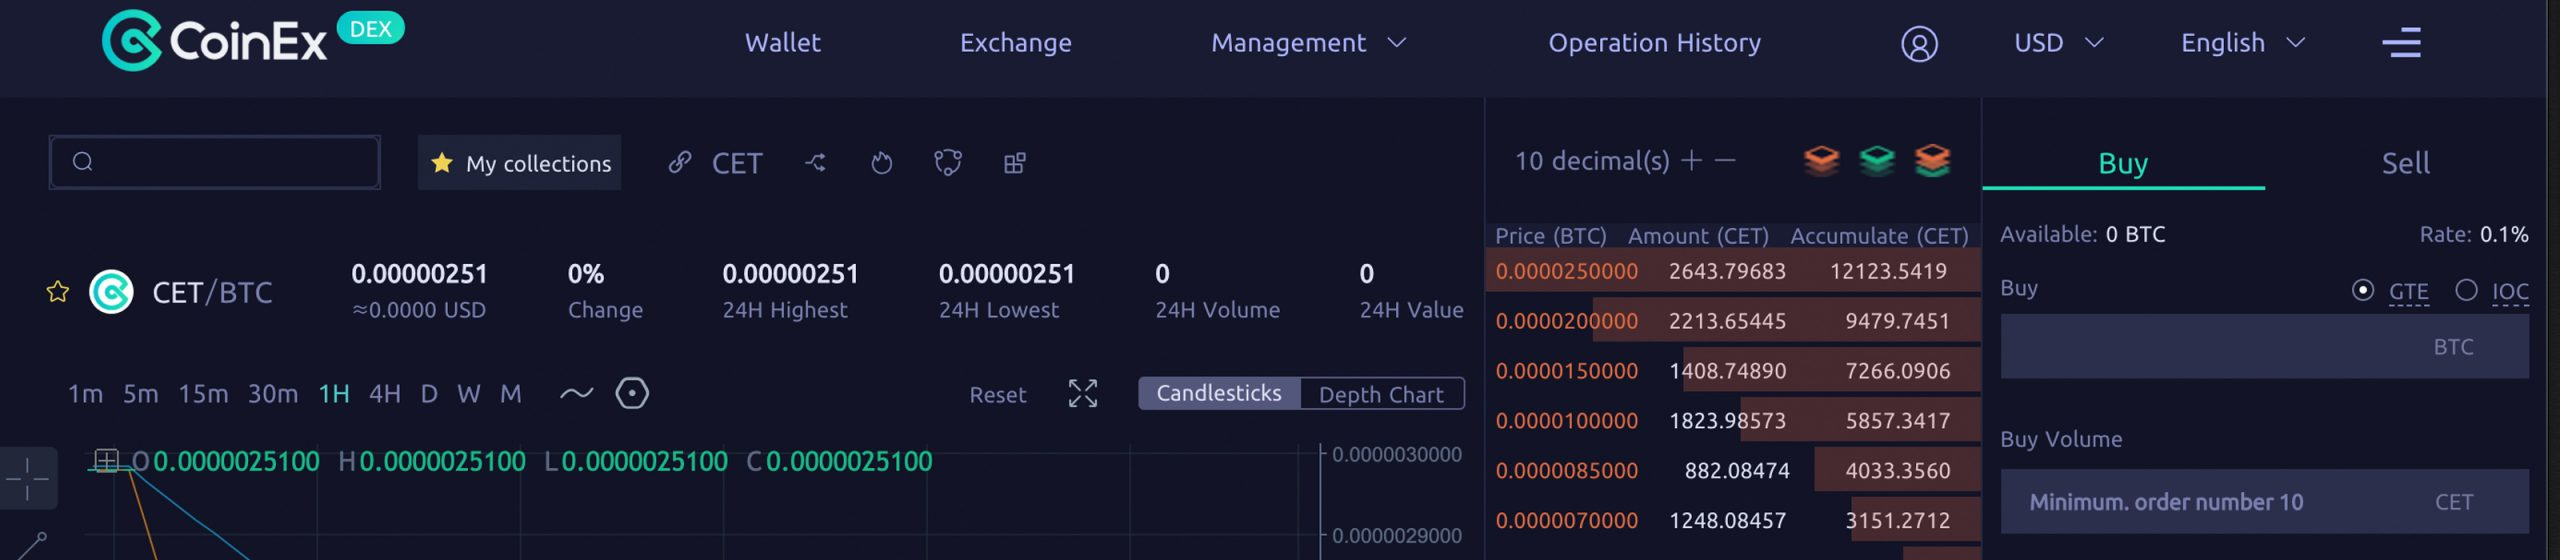 "La cadena Coinex lanza dos tokens anclados a BTC y BCH ""width ="" 2560 ""height ="" 560 ""srcset ="" https://blackswanfinances.com/wp-content/uploads/2019/11/exchangedexer-scaled.jpg 2560w, https://news.bitcoin.com/wp-content/uploads/2019/11 /exchangedexer-300x66.jpg 300w, https://news.bitcoin.com/wp-content/uploads/2019/11/exchangedexer-1024x224.jpg 1024w, https://news.bitcoin.com/wp-content/uploads /2019/11/exchangedexer-768x168.jpg 768w, https://news.bitcoin.com/wp-content/uploads/2019/11/exchangedexer-1536x336.jpg 1536w, https://news.bitcoin.com/wp -content / uploads / 2019/11 / exchangedexer-2048x448.jpg 2048w, https://news.bitcoin.com/wp-content/uploads/2019/11/exchangedexer-696x152.jpg 696w, https: //news.bitcoin .com / wp-content / uploads / 2019/11 / exchangedexer-1392x305.jpg 1392w, https://news.bitcoin.com/wp-content/uploads/2019/11/exchangedexer-1068x234.jp g 1068w, https://news.bitcoin.com/wp-content/uploads/2019/11/exchangedexer-1920x420.jpg 1920w ""tamaños ="" (ancho máximo: 2560px) 100vw, 2560px"